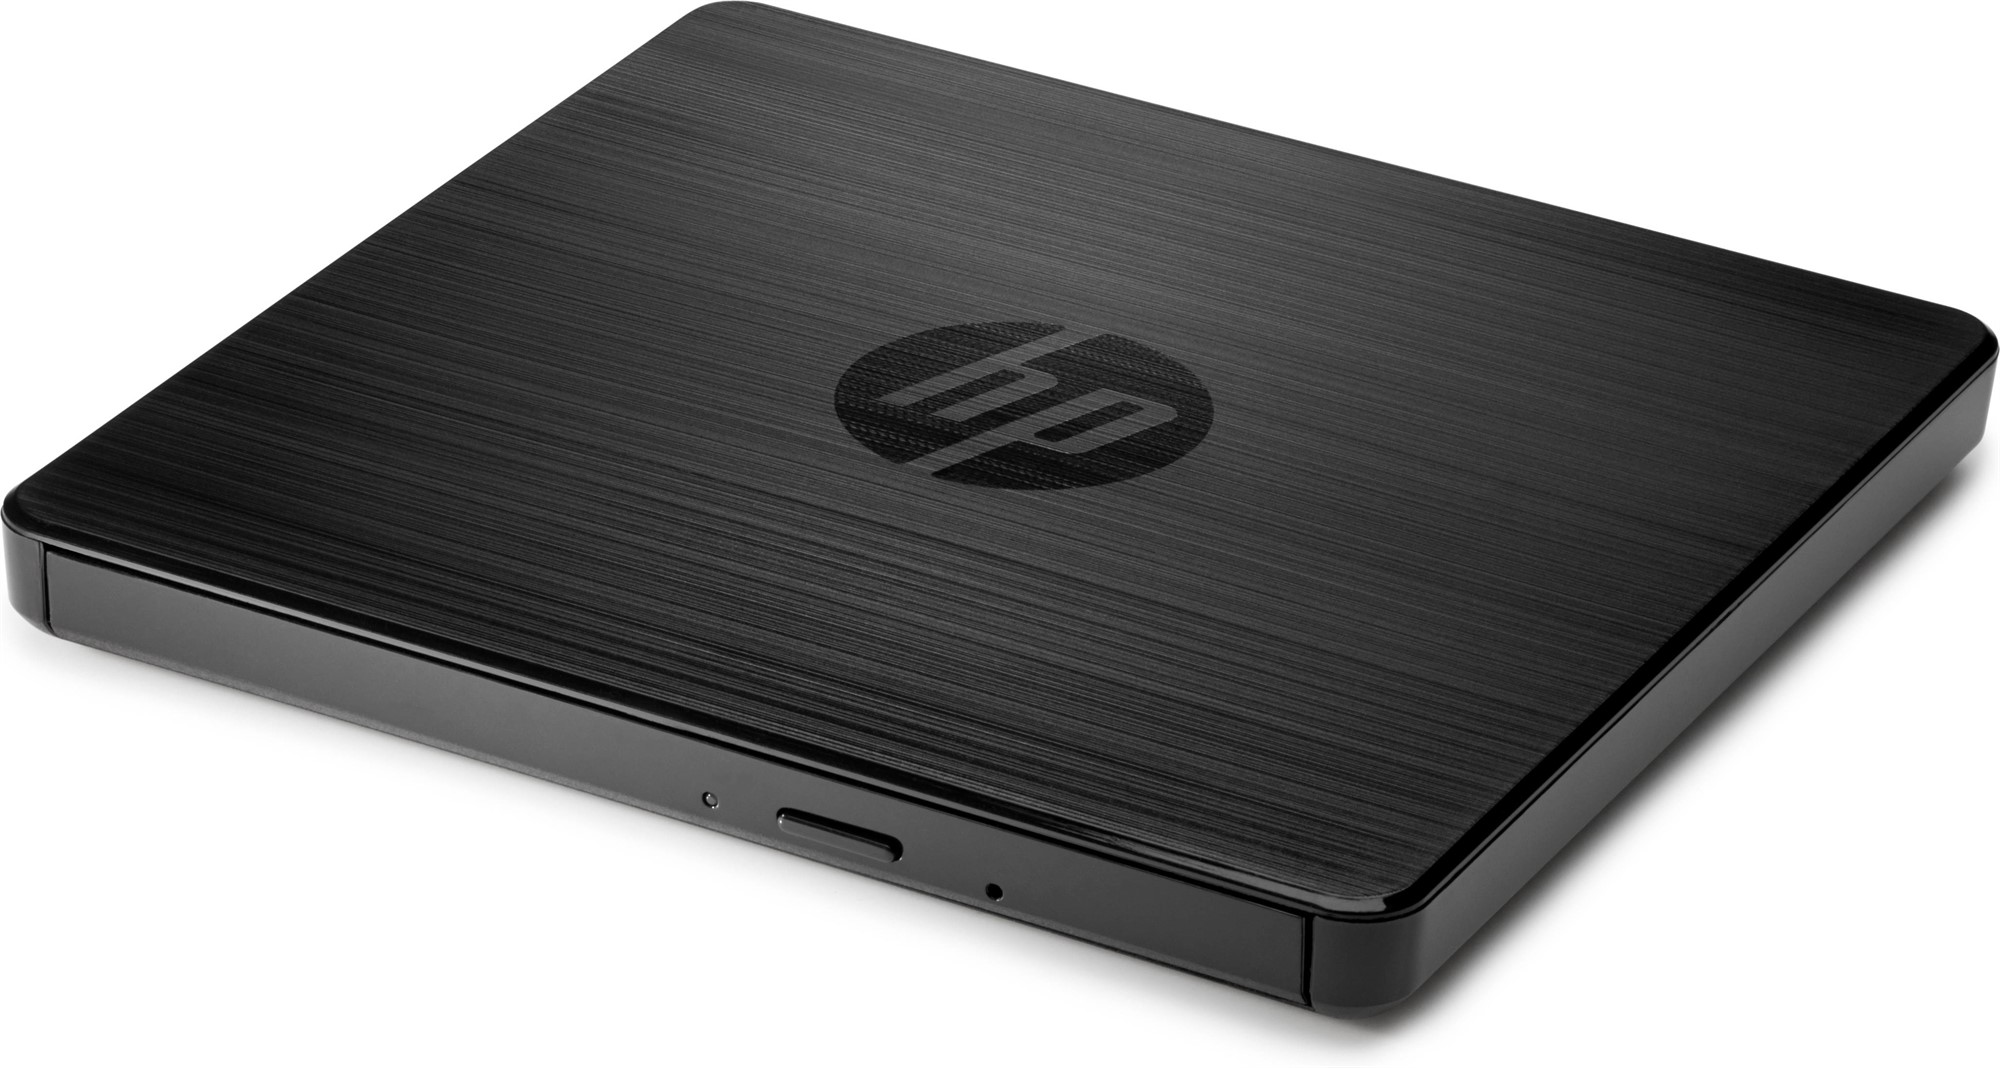 HP Y3T76AA USB EXTERNAL DVD-RW WRITER OPTICAL DISC DRIVE